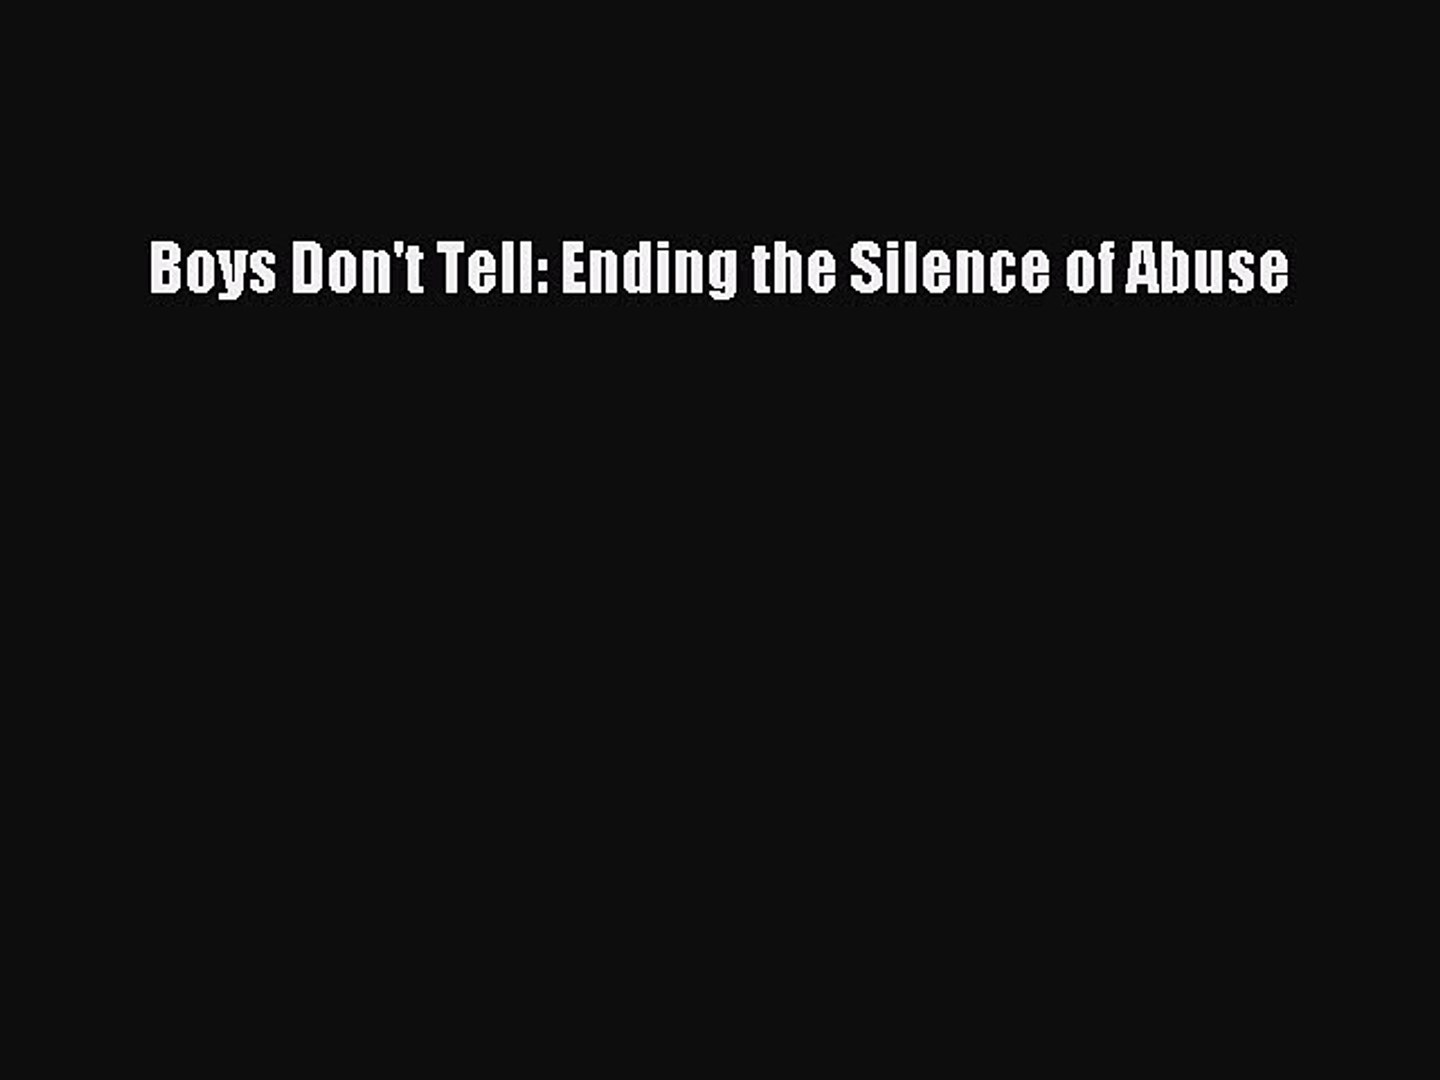 Boys Dont Tell: Ending the Silence of Abuse